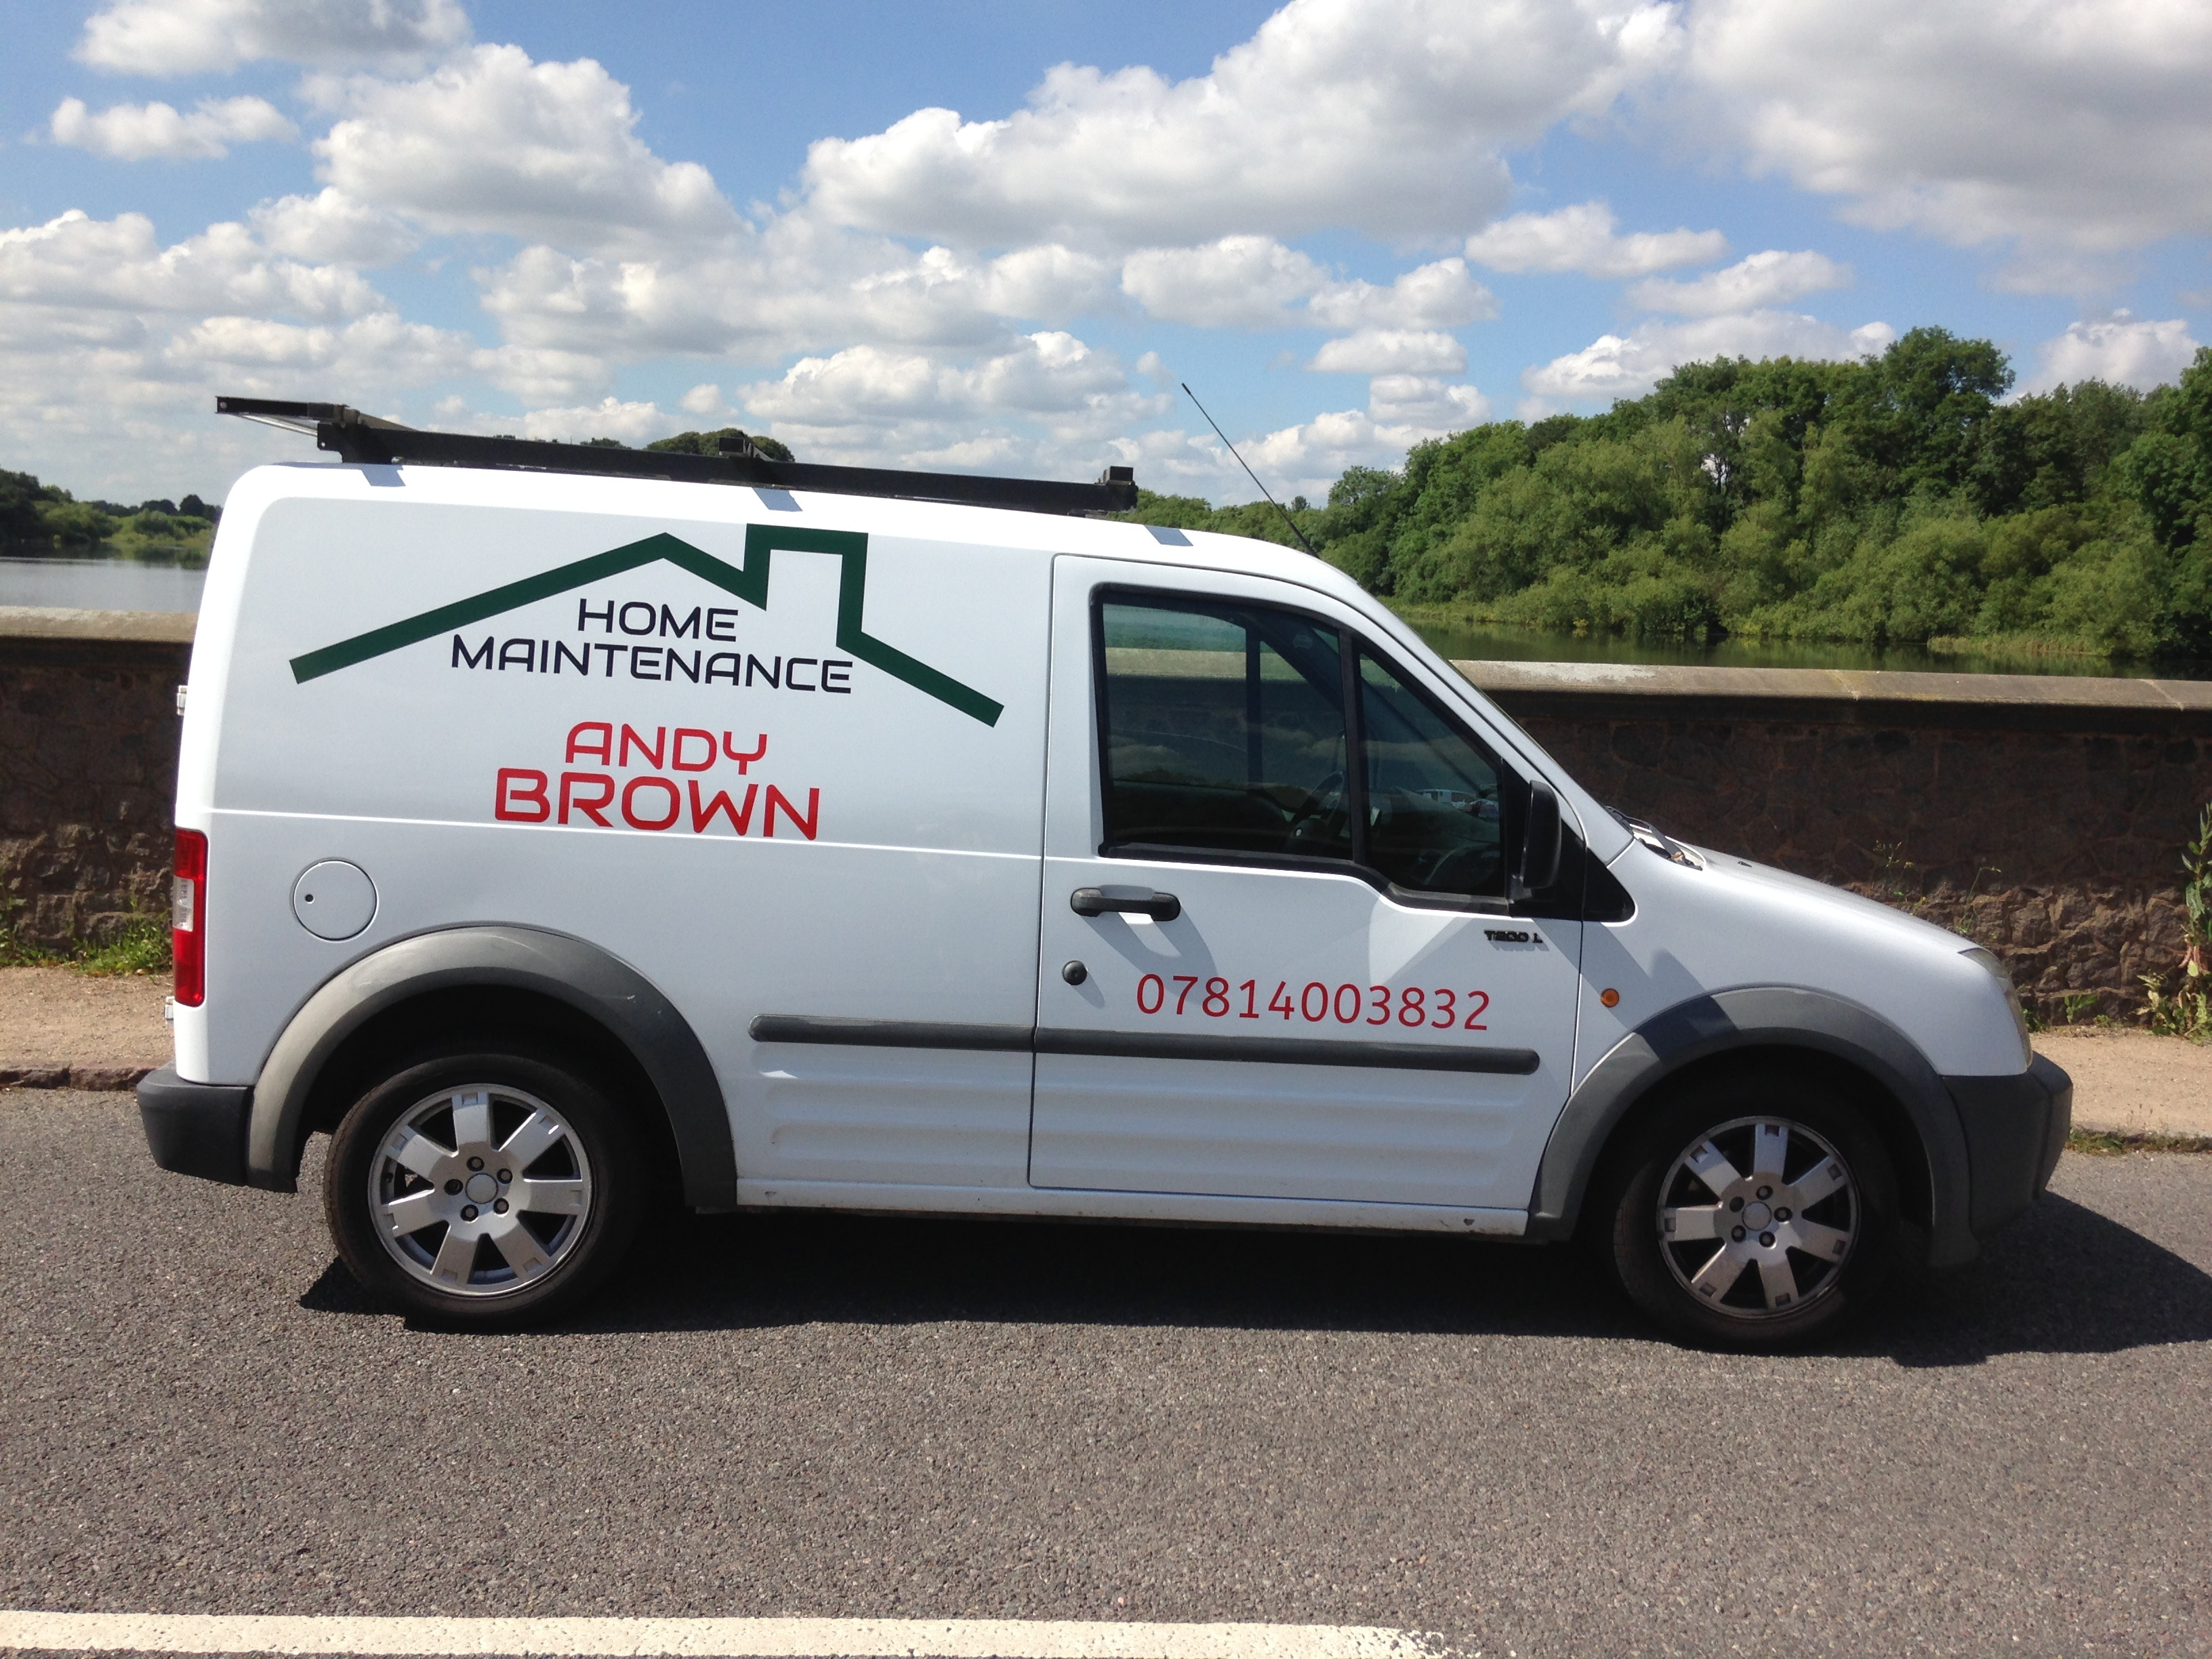 Van Signs Online Andy Brown Home Maintenance Van